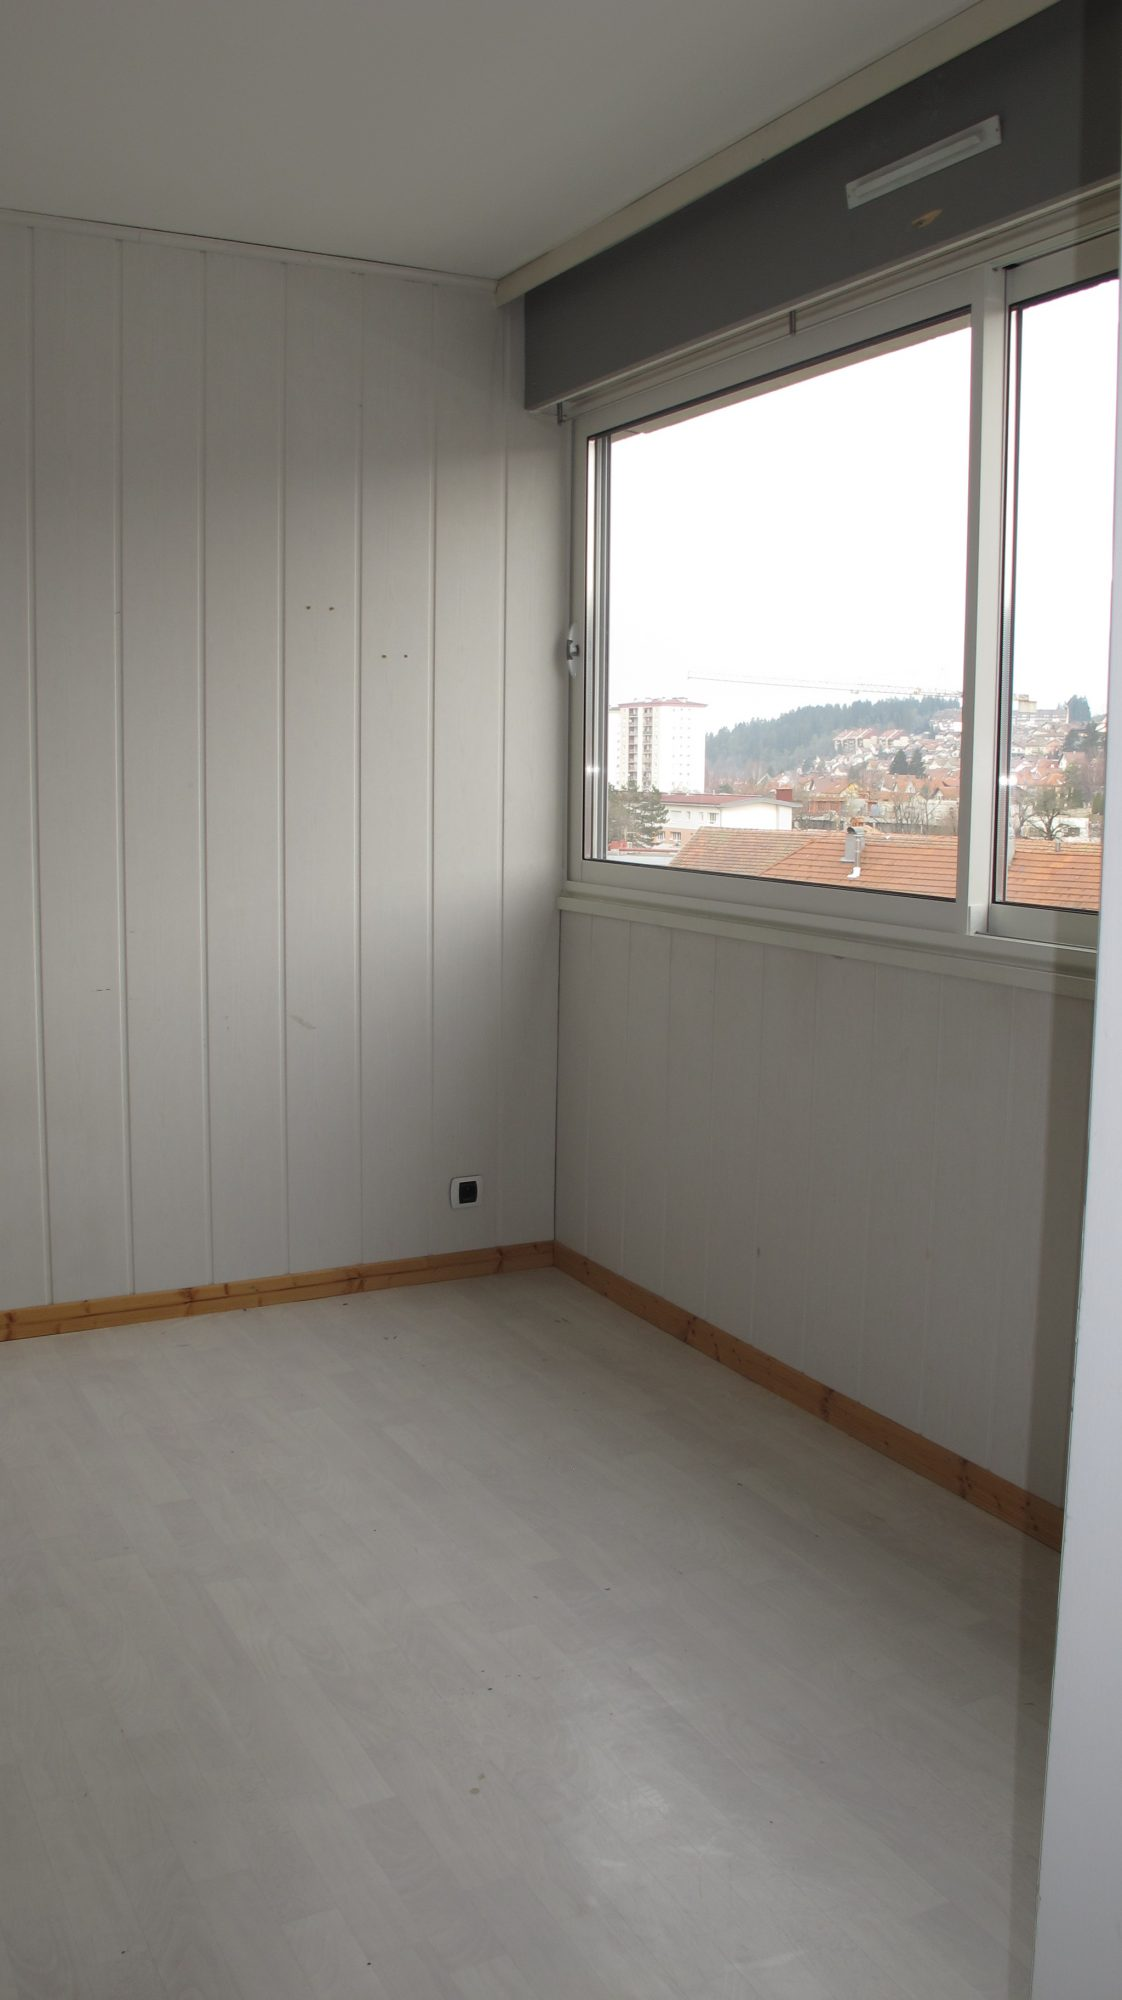 appartement pontarlier centre ville 4 chambres balcon garage pontarlier agence immobiliere